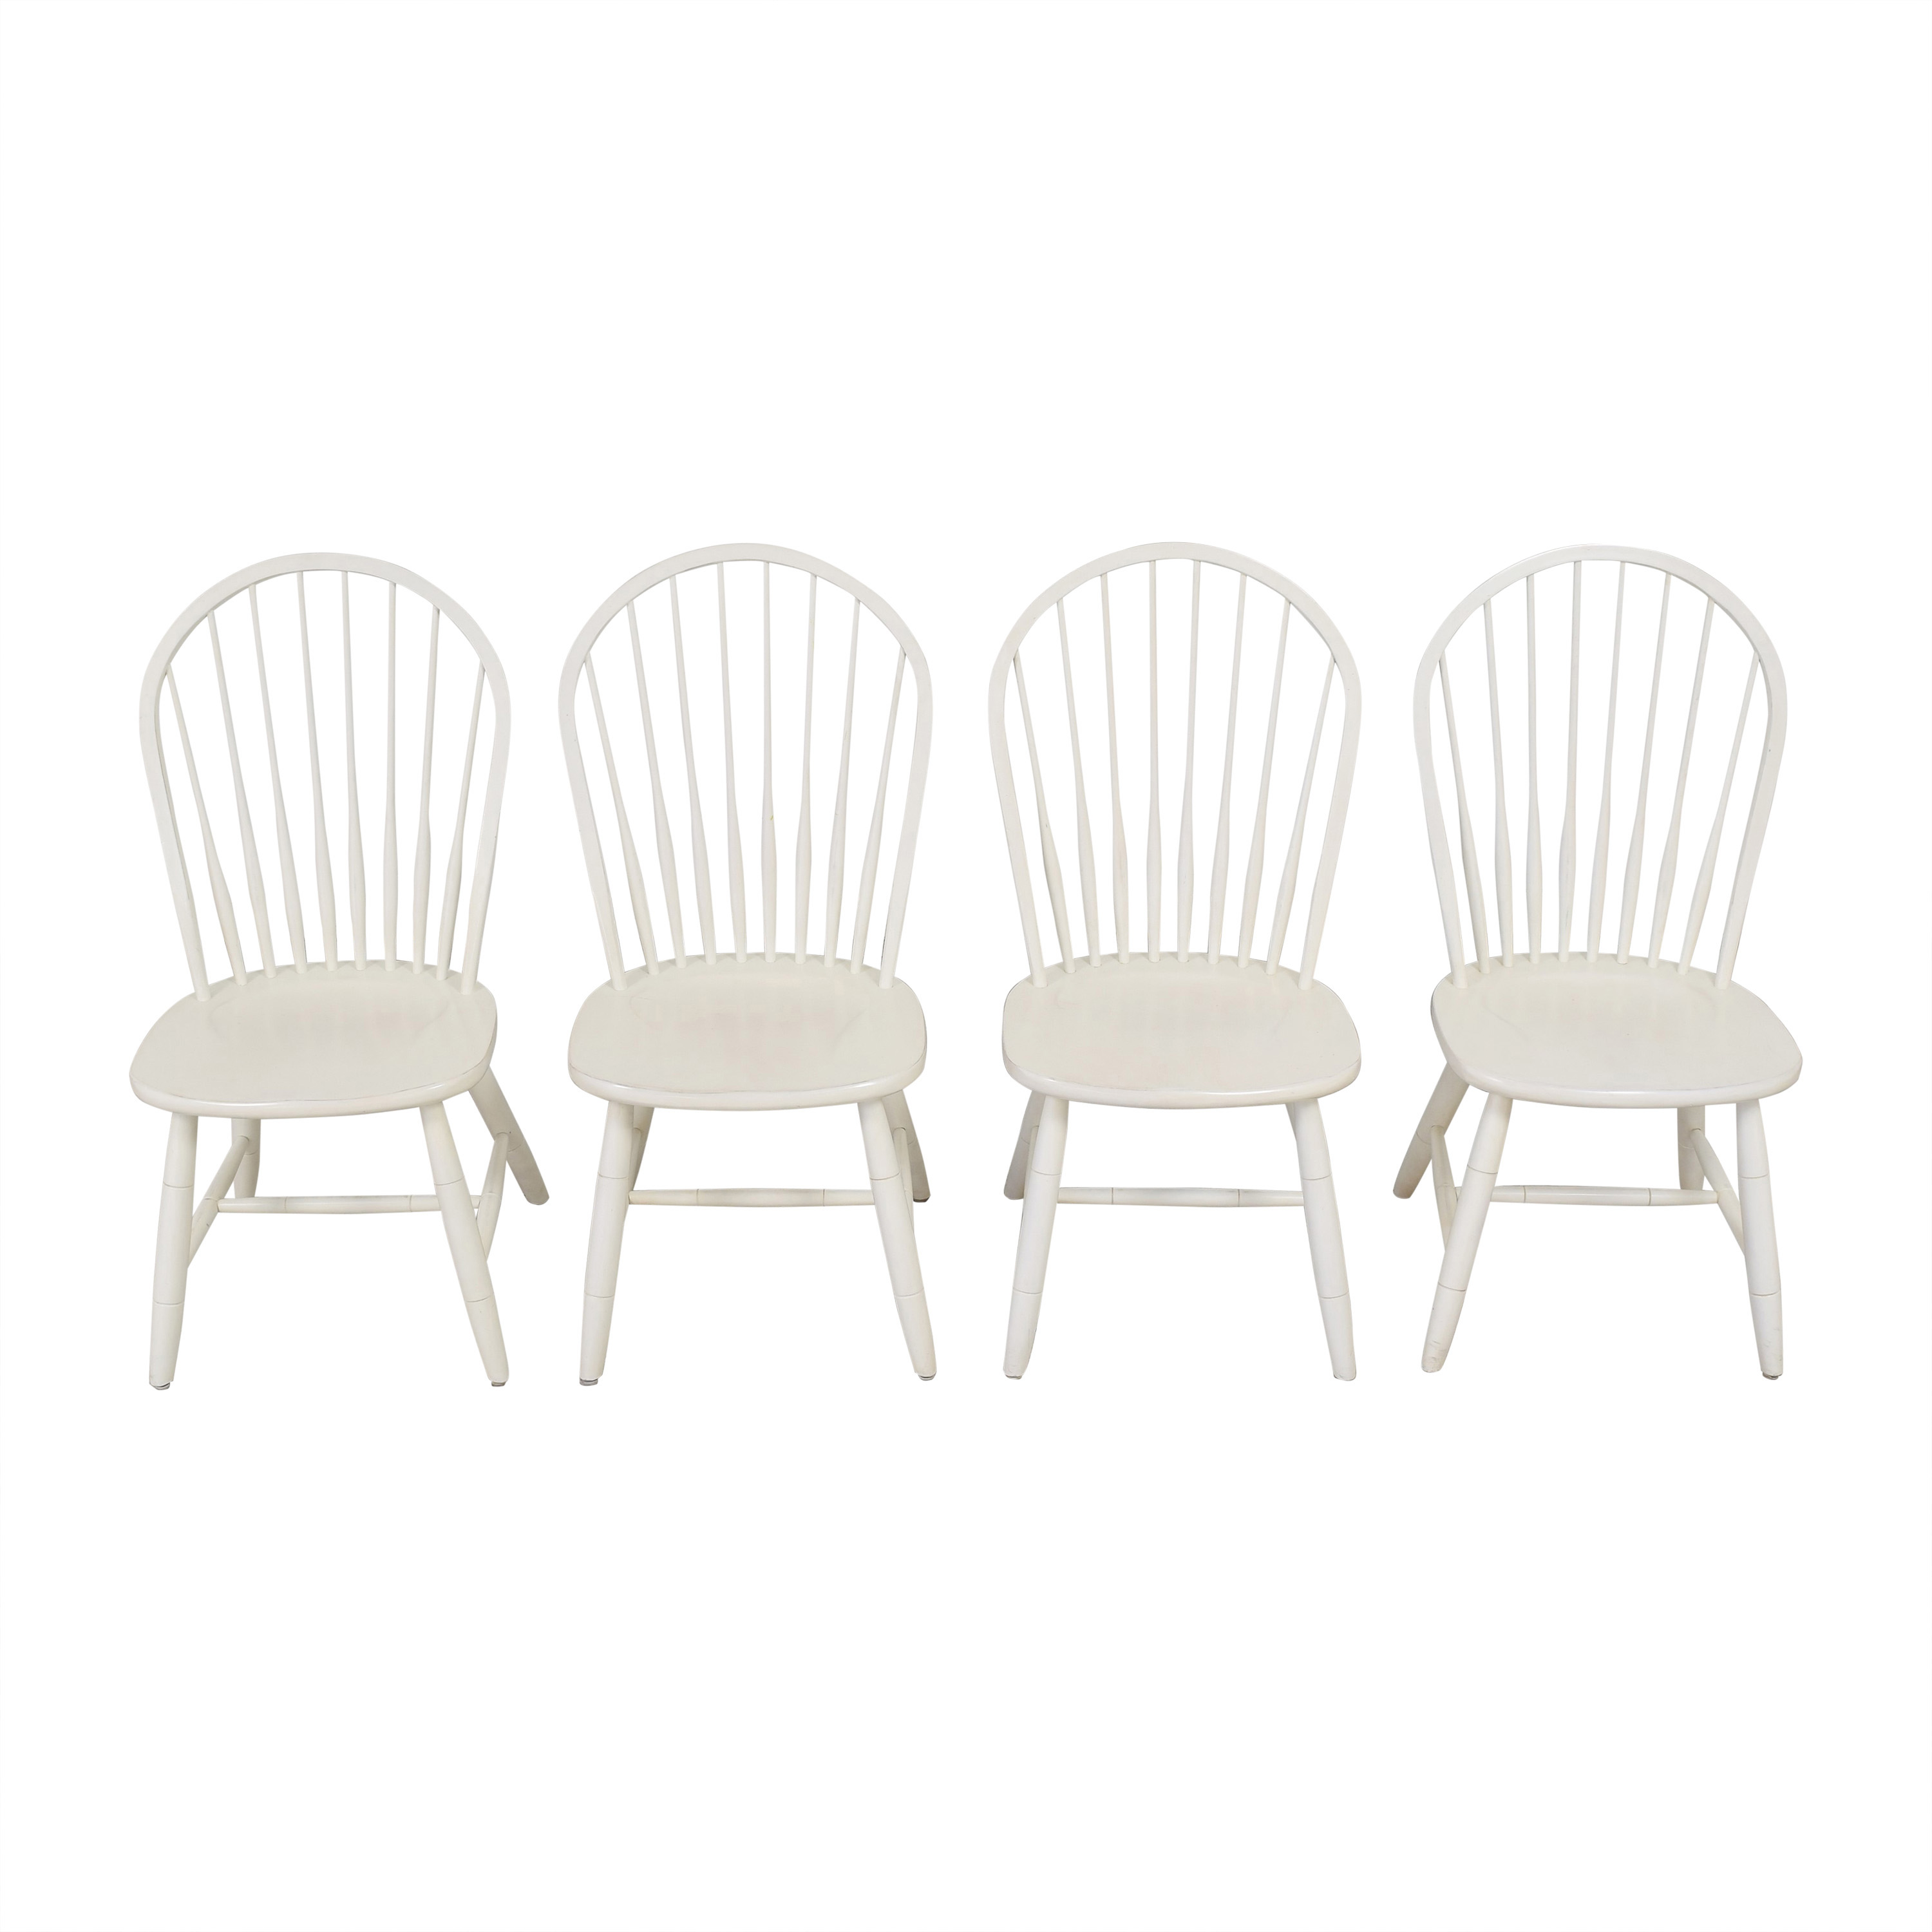 Ethan Allen Ethan Allen Gilbert Dining Side Chairs for sale